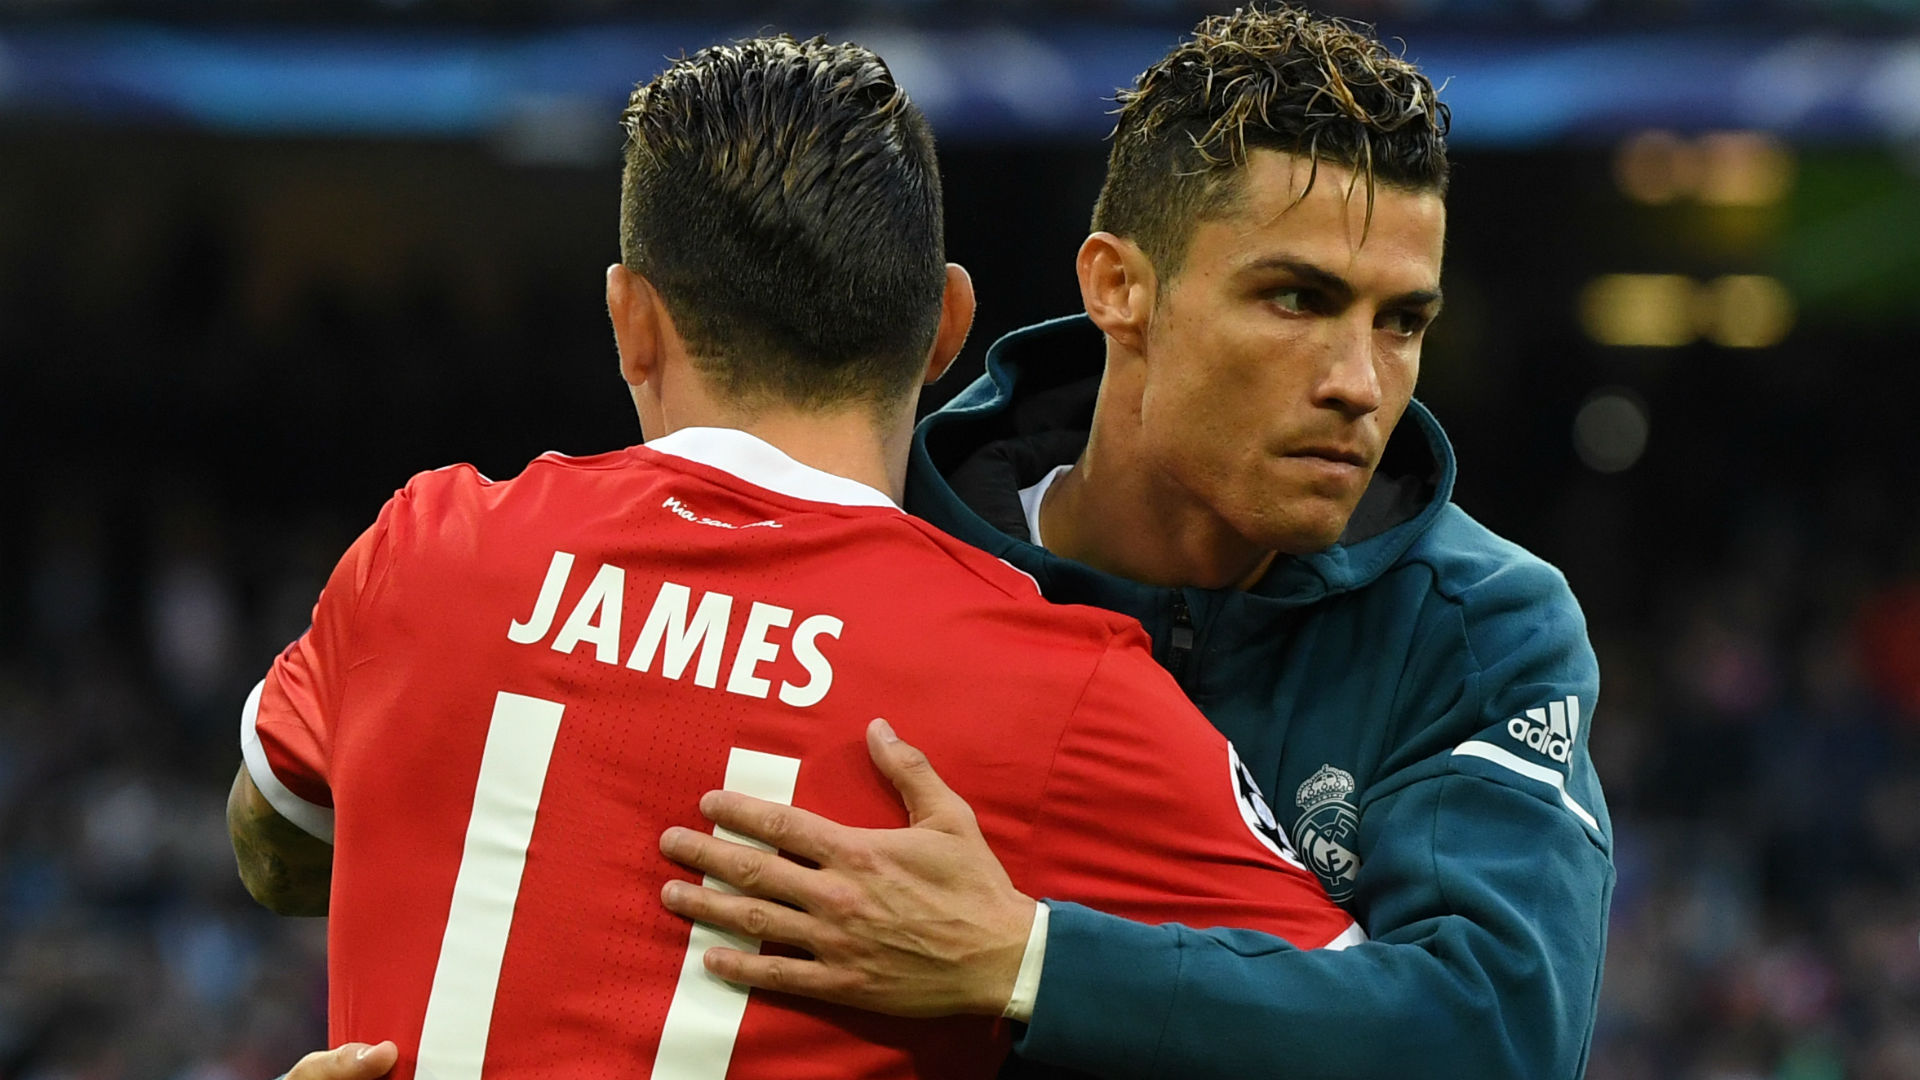 James Rodríguez - Cristiano Ronaldo Bayern - Real Madrid Champions League 2018